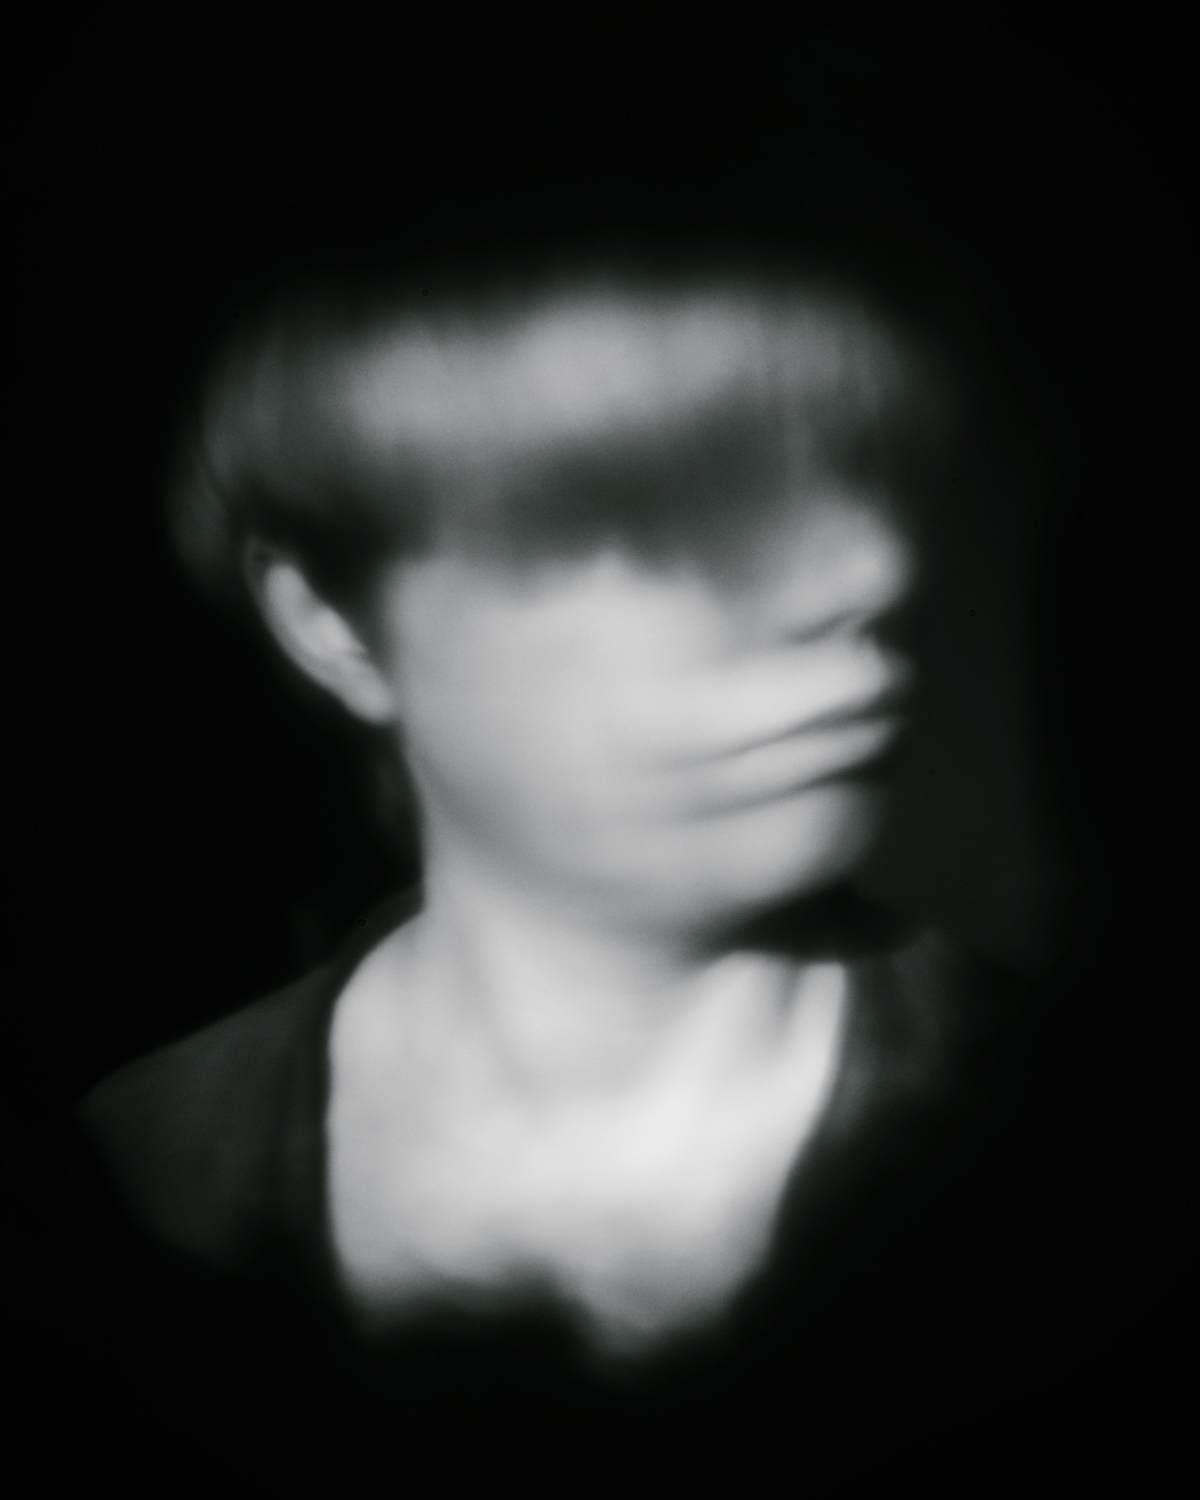 blurry portrait pinhole body cap camera